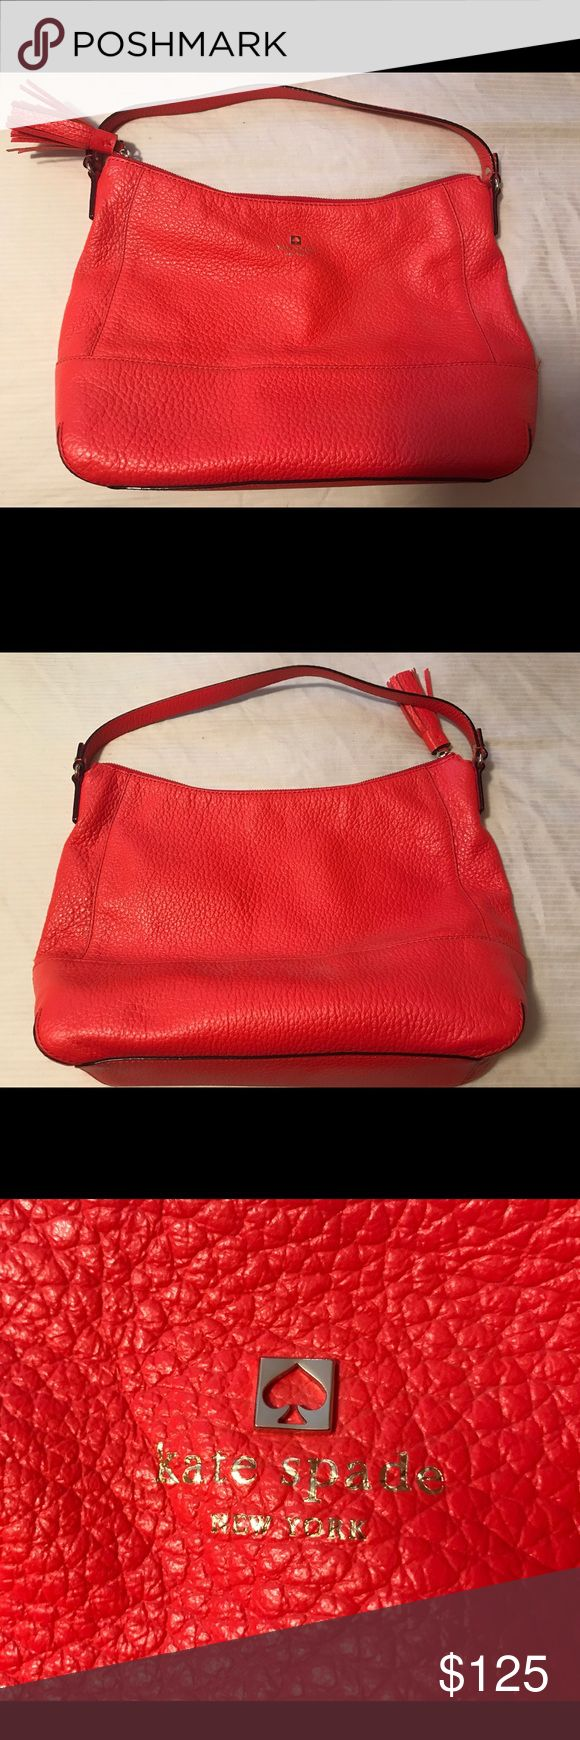 Kate Spade Large Hobo Beautiful coral pebble leather bag with 2 inside slip pockets and I inside zipped pocket. Zippered closure with tassel detail. Brand new - never used! kate spade Bags Hobos